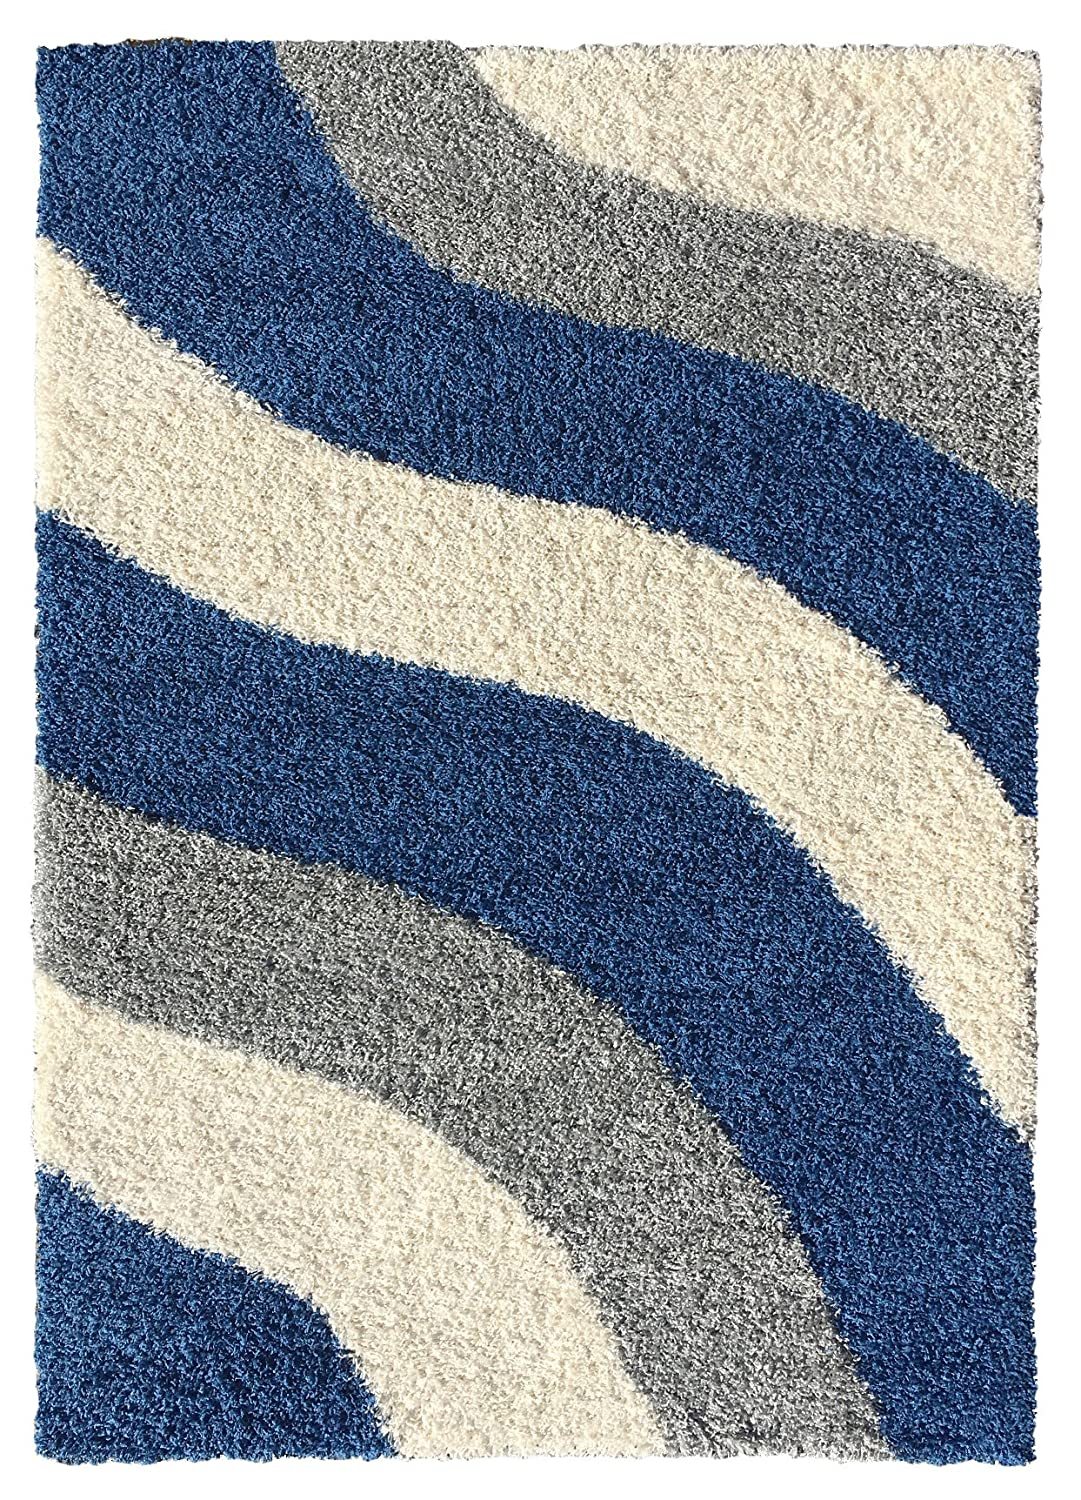 Amazon.com: Soft Shag Area Rug 3x5 Geometric Striped Ivory Blue Grey Shaggy  Rug   Contemporary Area Rugs For Living Room Bedroom Kitchen Decorative  Modern ...